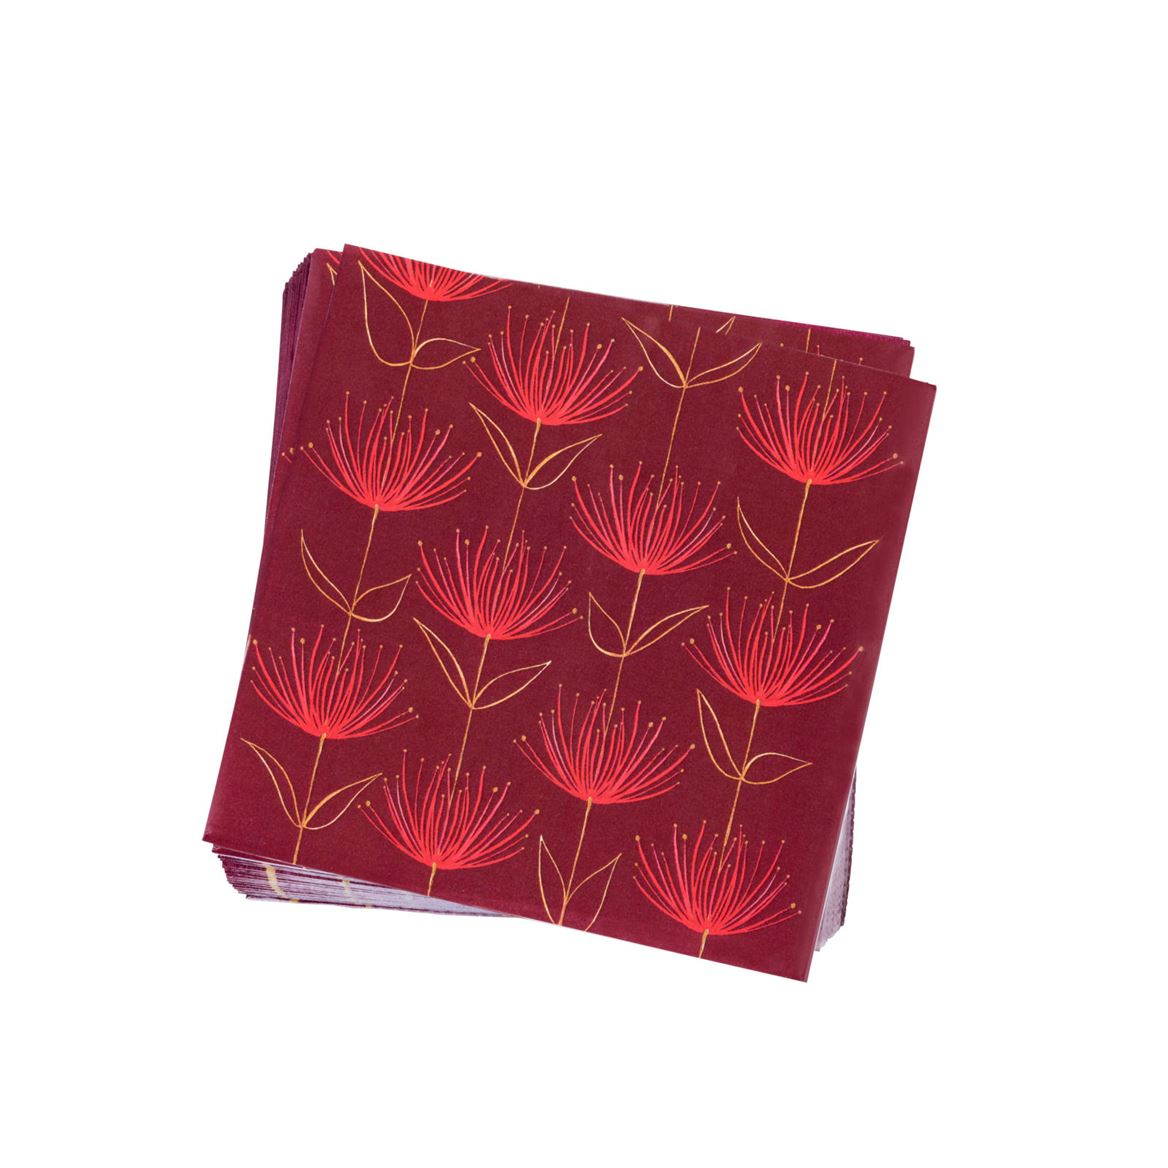 FLOWERS FIRE RED Paquete de 20 servilletas rojo An. 33 x L 33 cm_flowers-fire-red-paquete-de-20-servilletas-rojo-an--33-x-l-33-cm